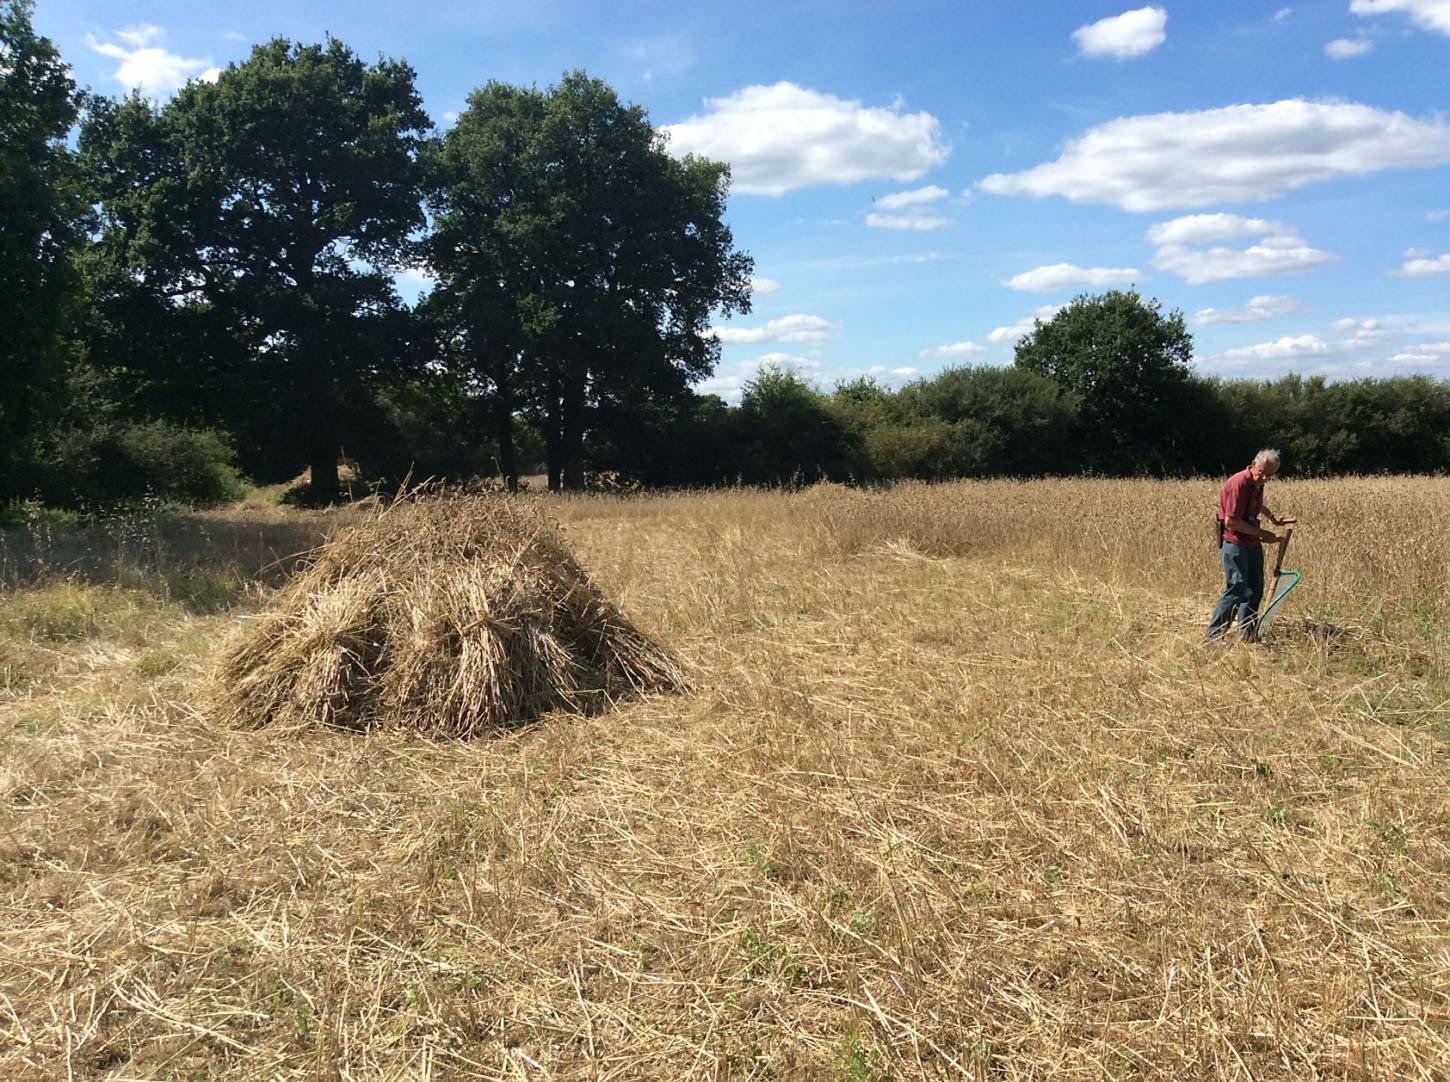 Red Chidham stook, our manual harvest at Lodge Farm, pics = <a href='http://www.annbodkin.co.uk/' target='_blank'>Ann Bodkin</a> - 2:09pm&nbsp;13<sup>th</sup>&nbsp;Aug.&nbsp;'17